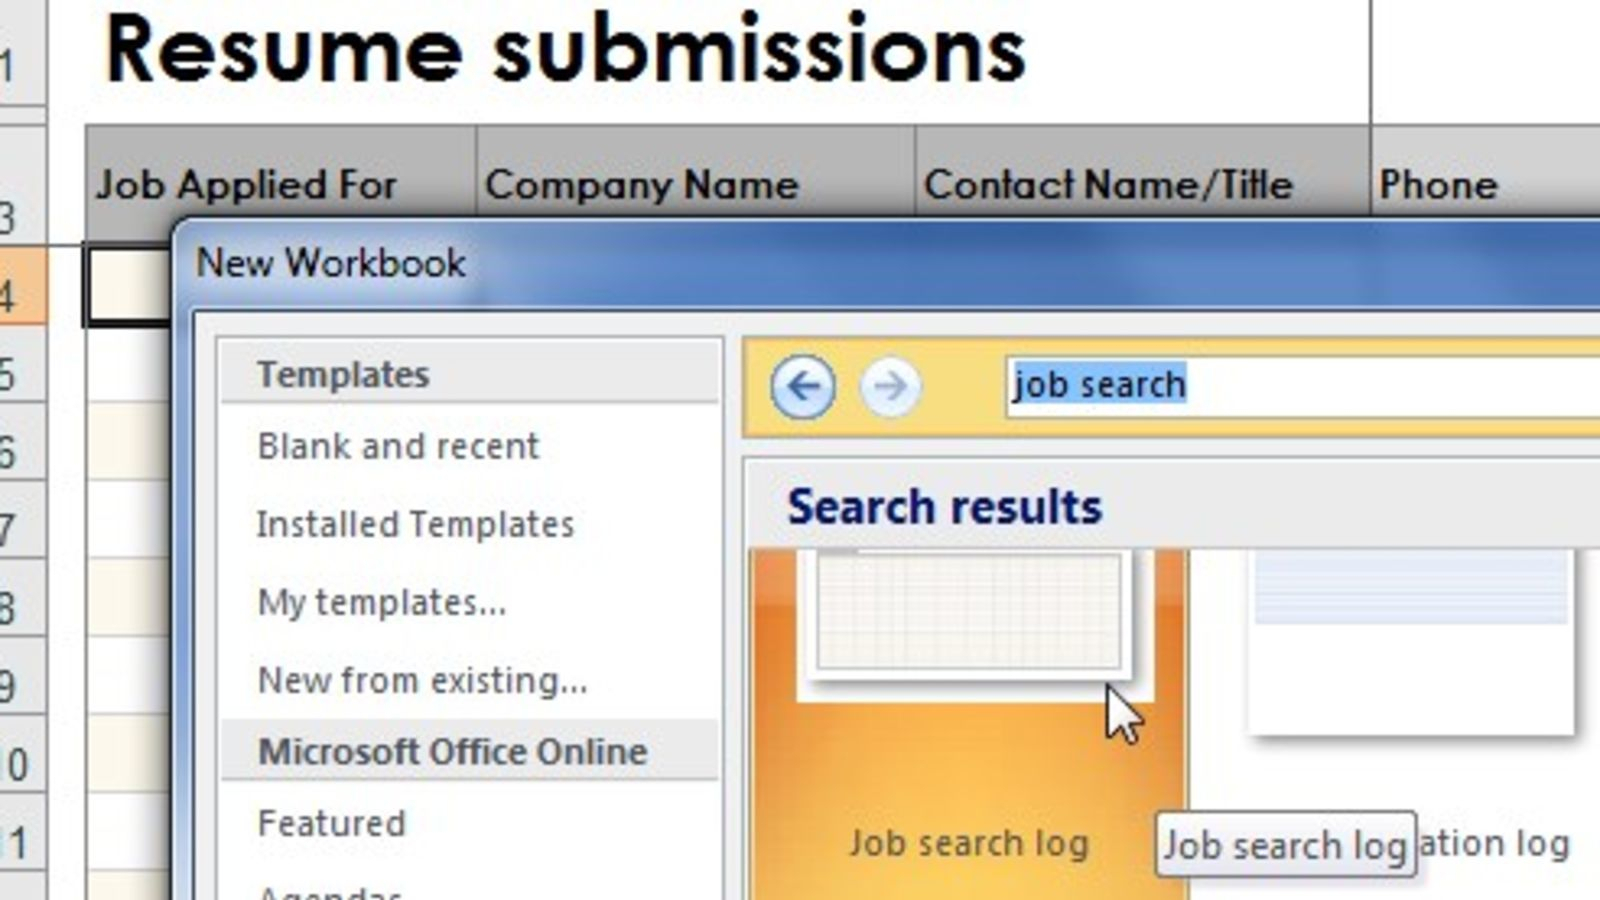 Job Search Spreadsheet Google Sheets In Create A Log To Keep Track Of Your Job Search